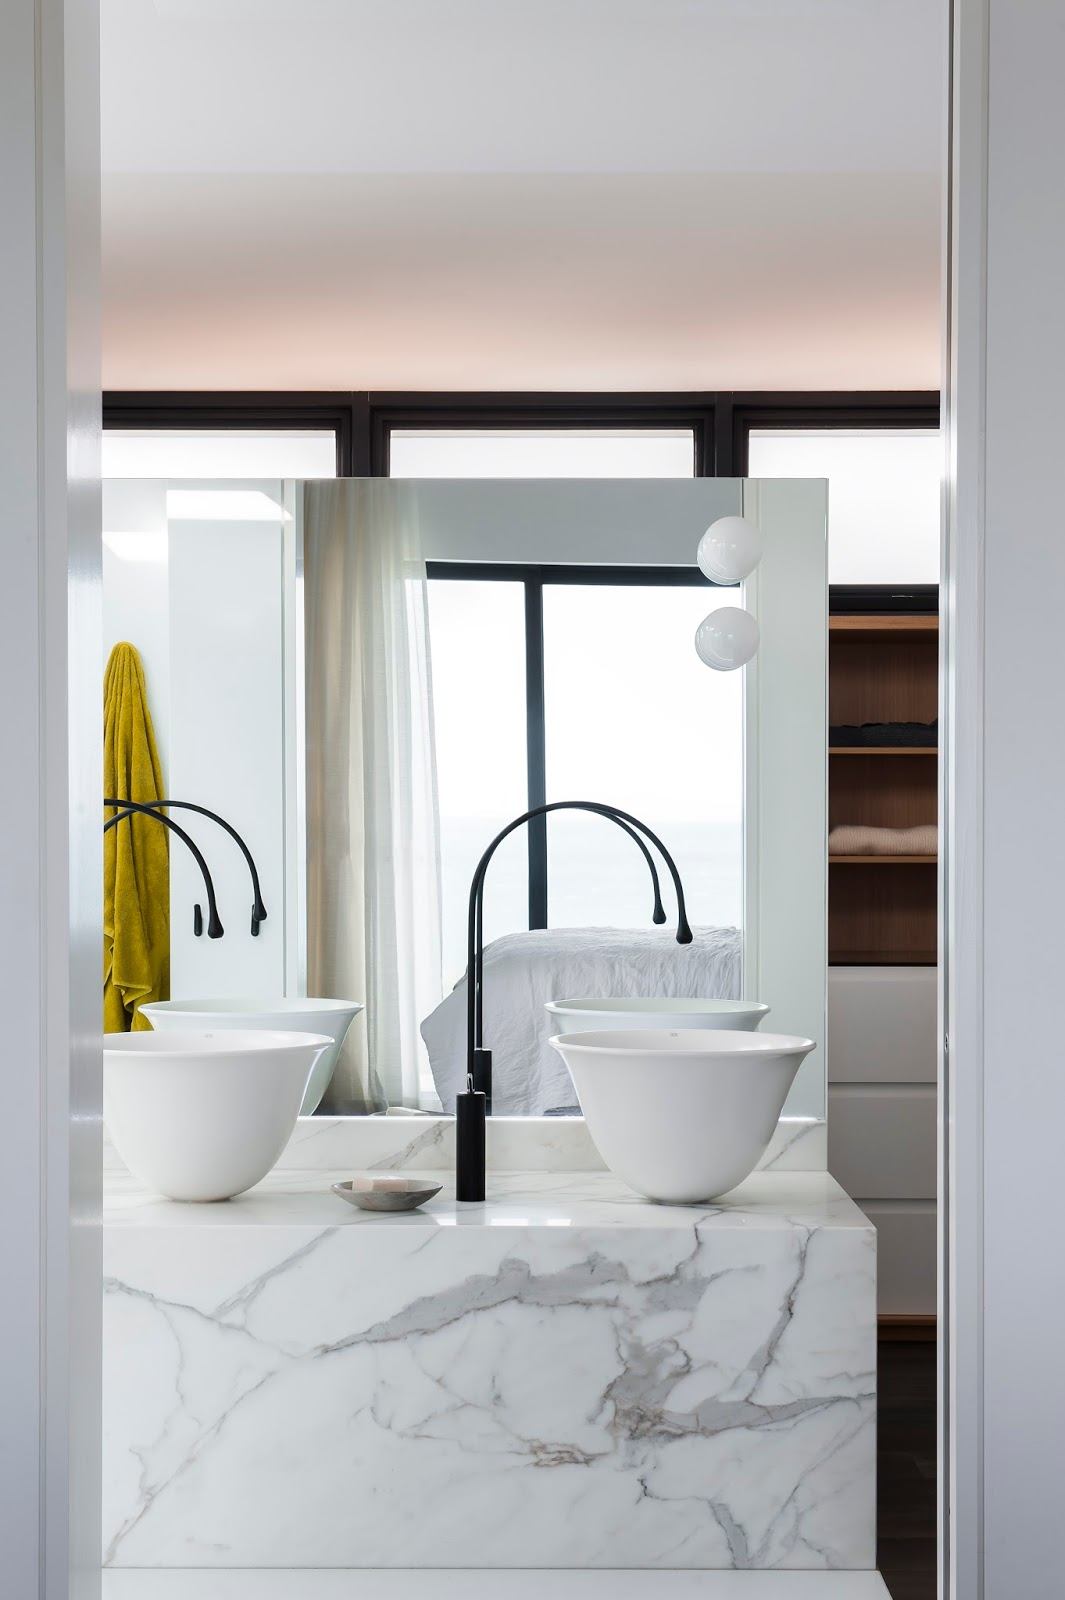 Minosa melbourne bathroom design a famous house view for Bathroom decor melbourne